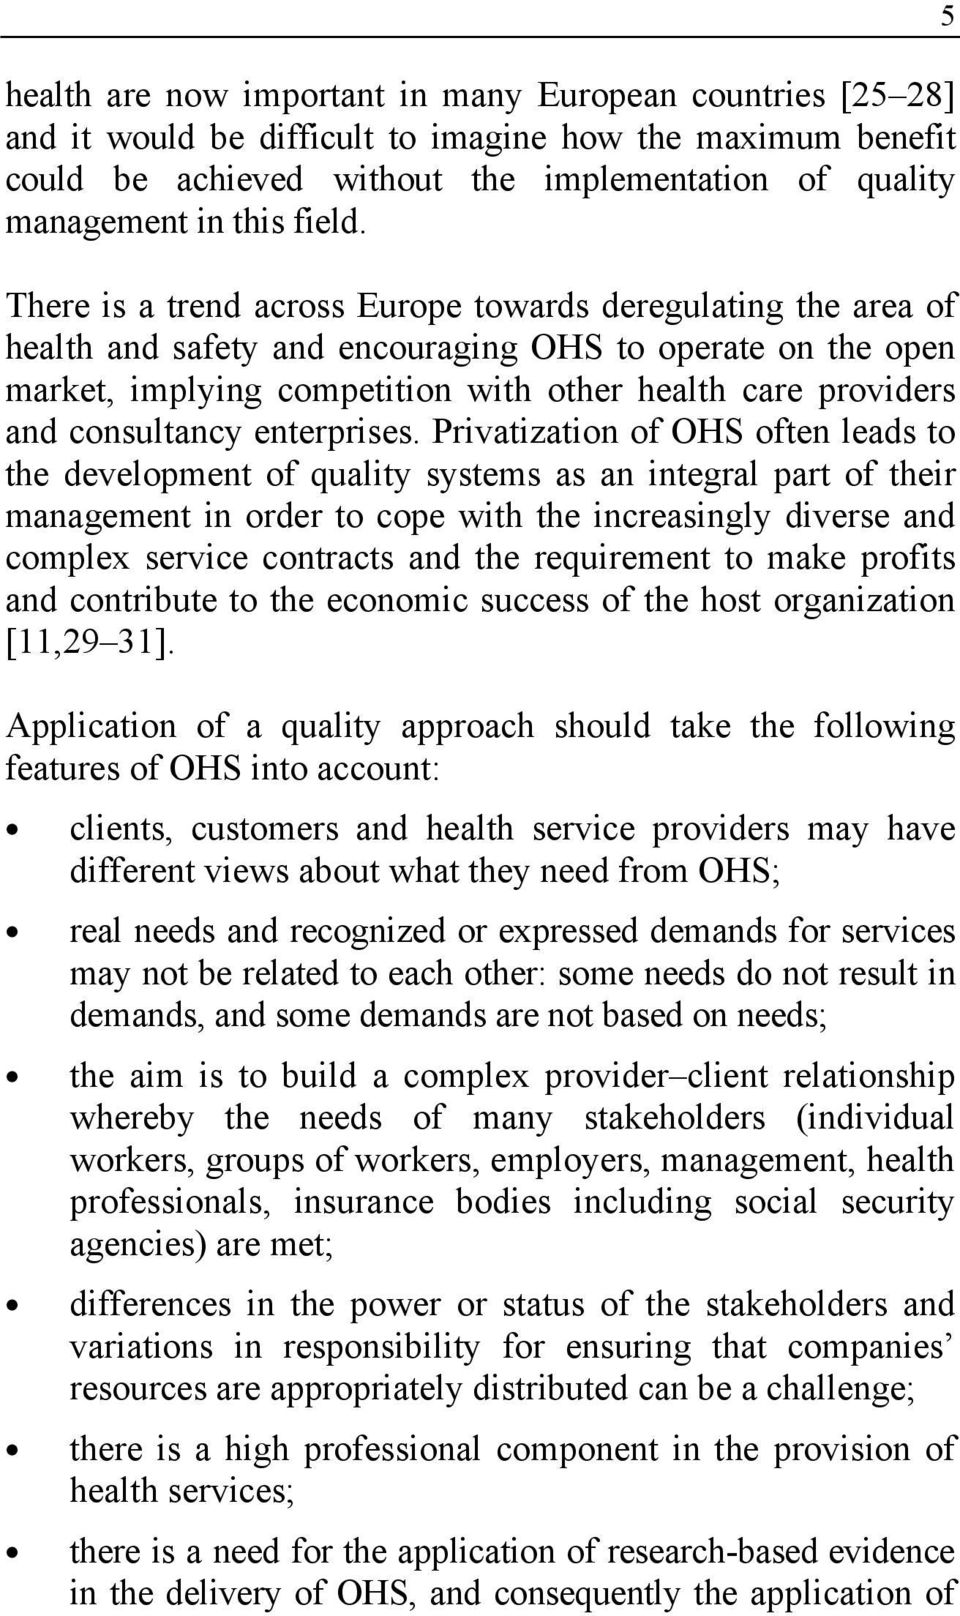 There is a trend across Europe towards deregulating the area of health and safety and encouraging OHS to operate on the open market, implying competition with other health care providers and